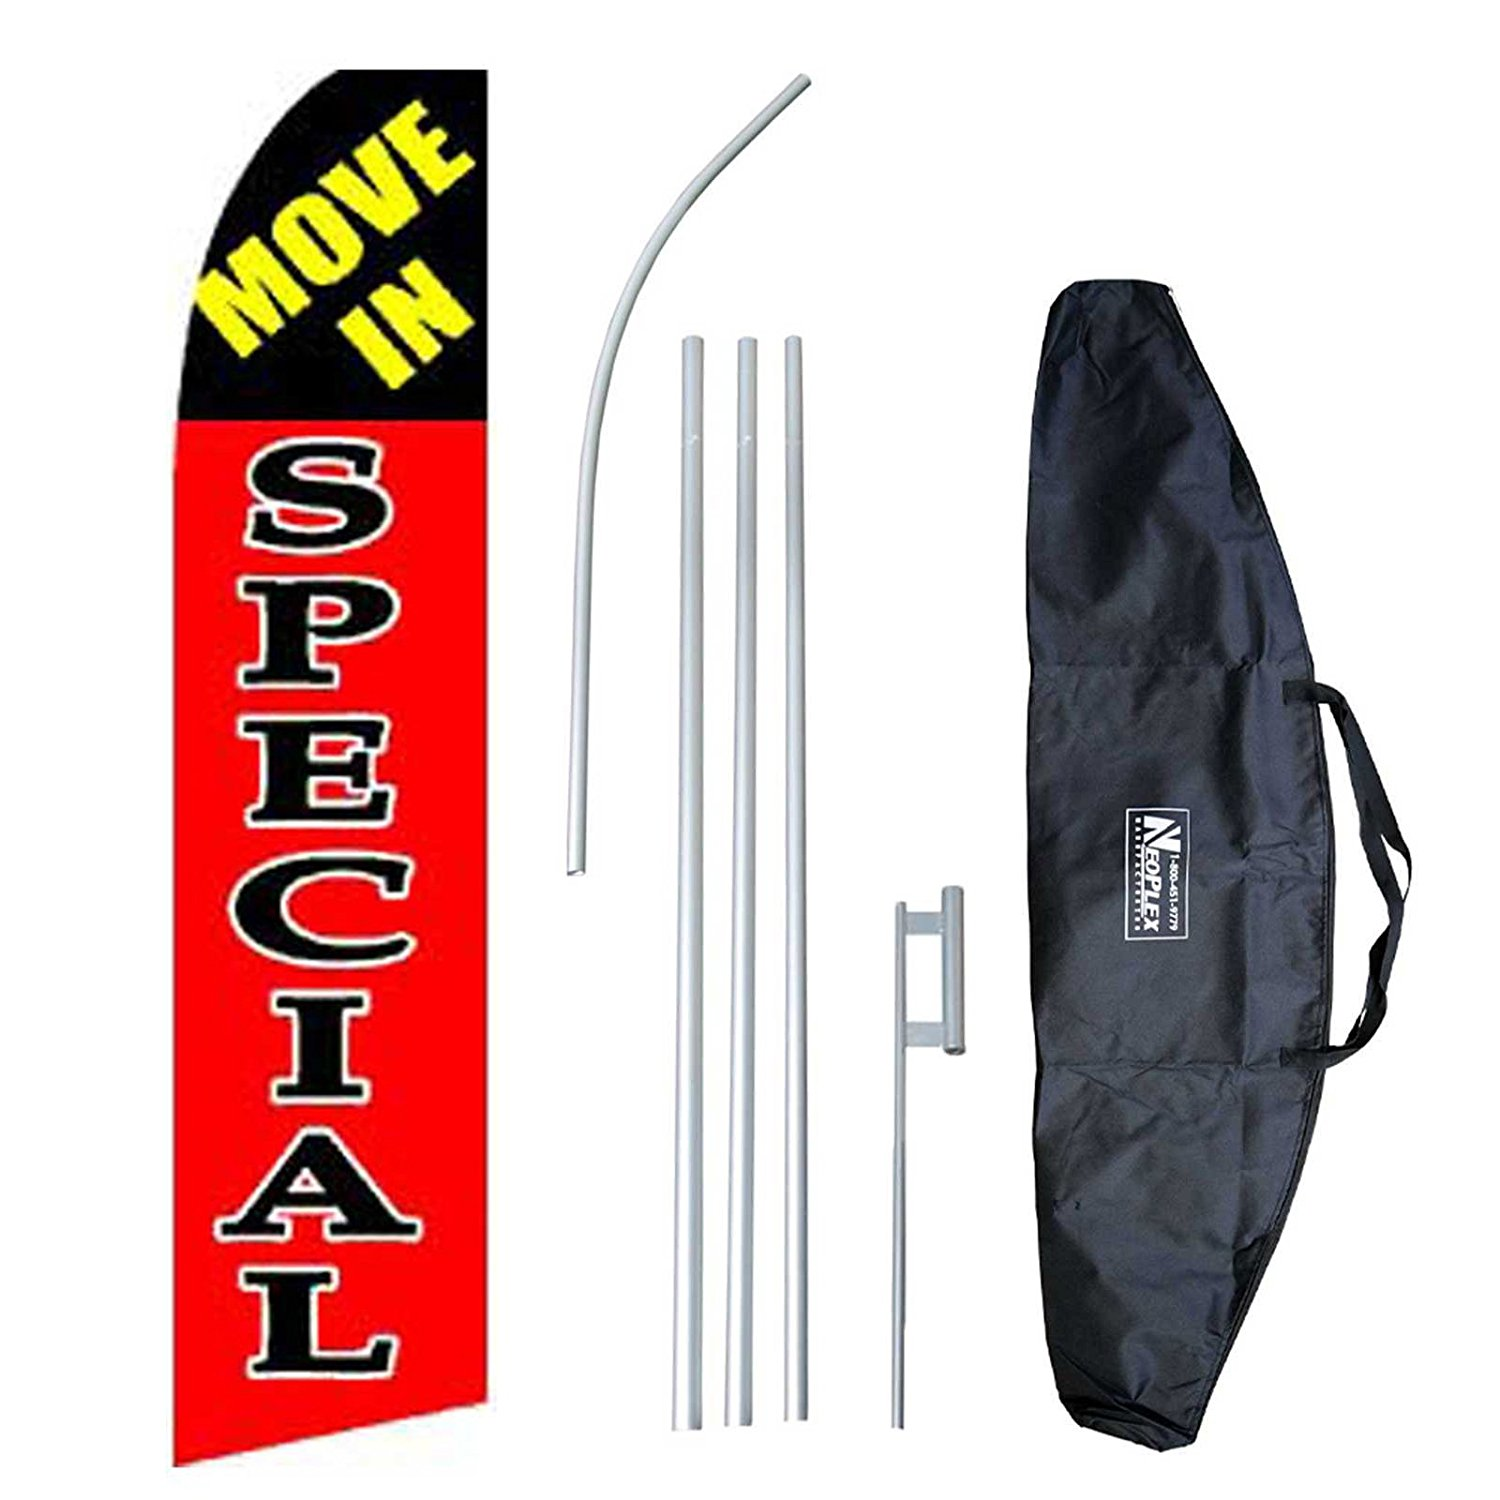 """Move In Special"" 12-foot Swooper Feather Flag and Case Complete Set...includes 12-foot Flag, 15-foot Pole, Ground Spike, and Carrying/Storage Case"